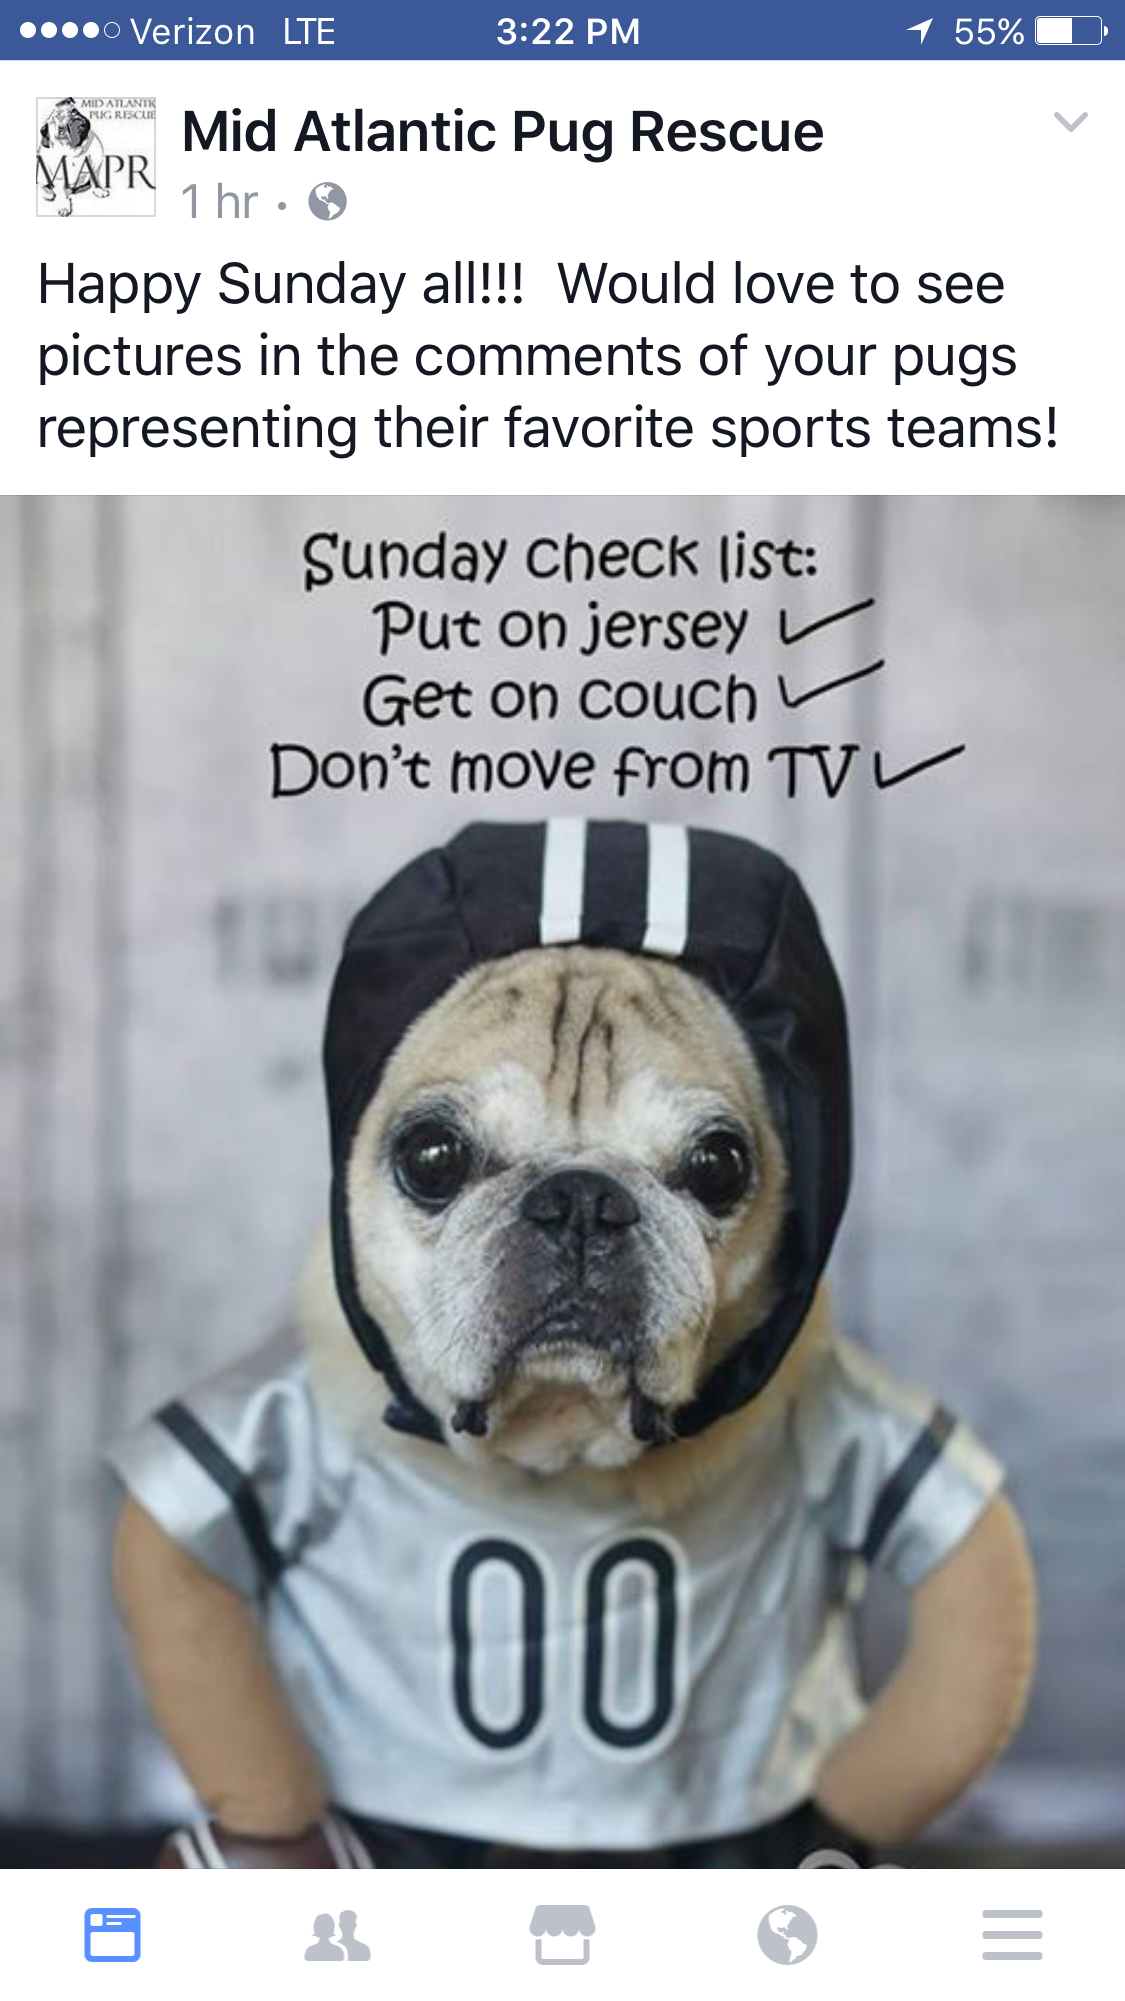 Image by Debbie Parker on Letterboard Pug rescue, Happy